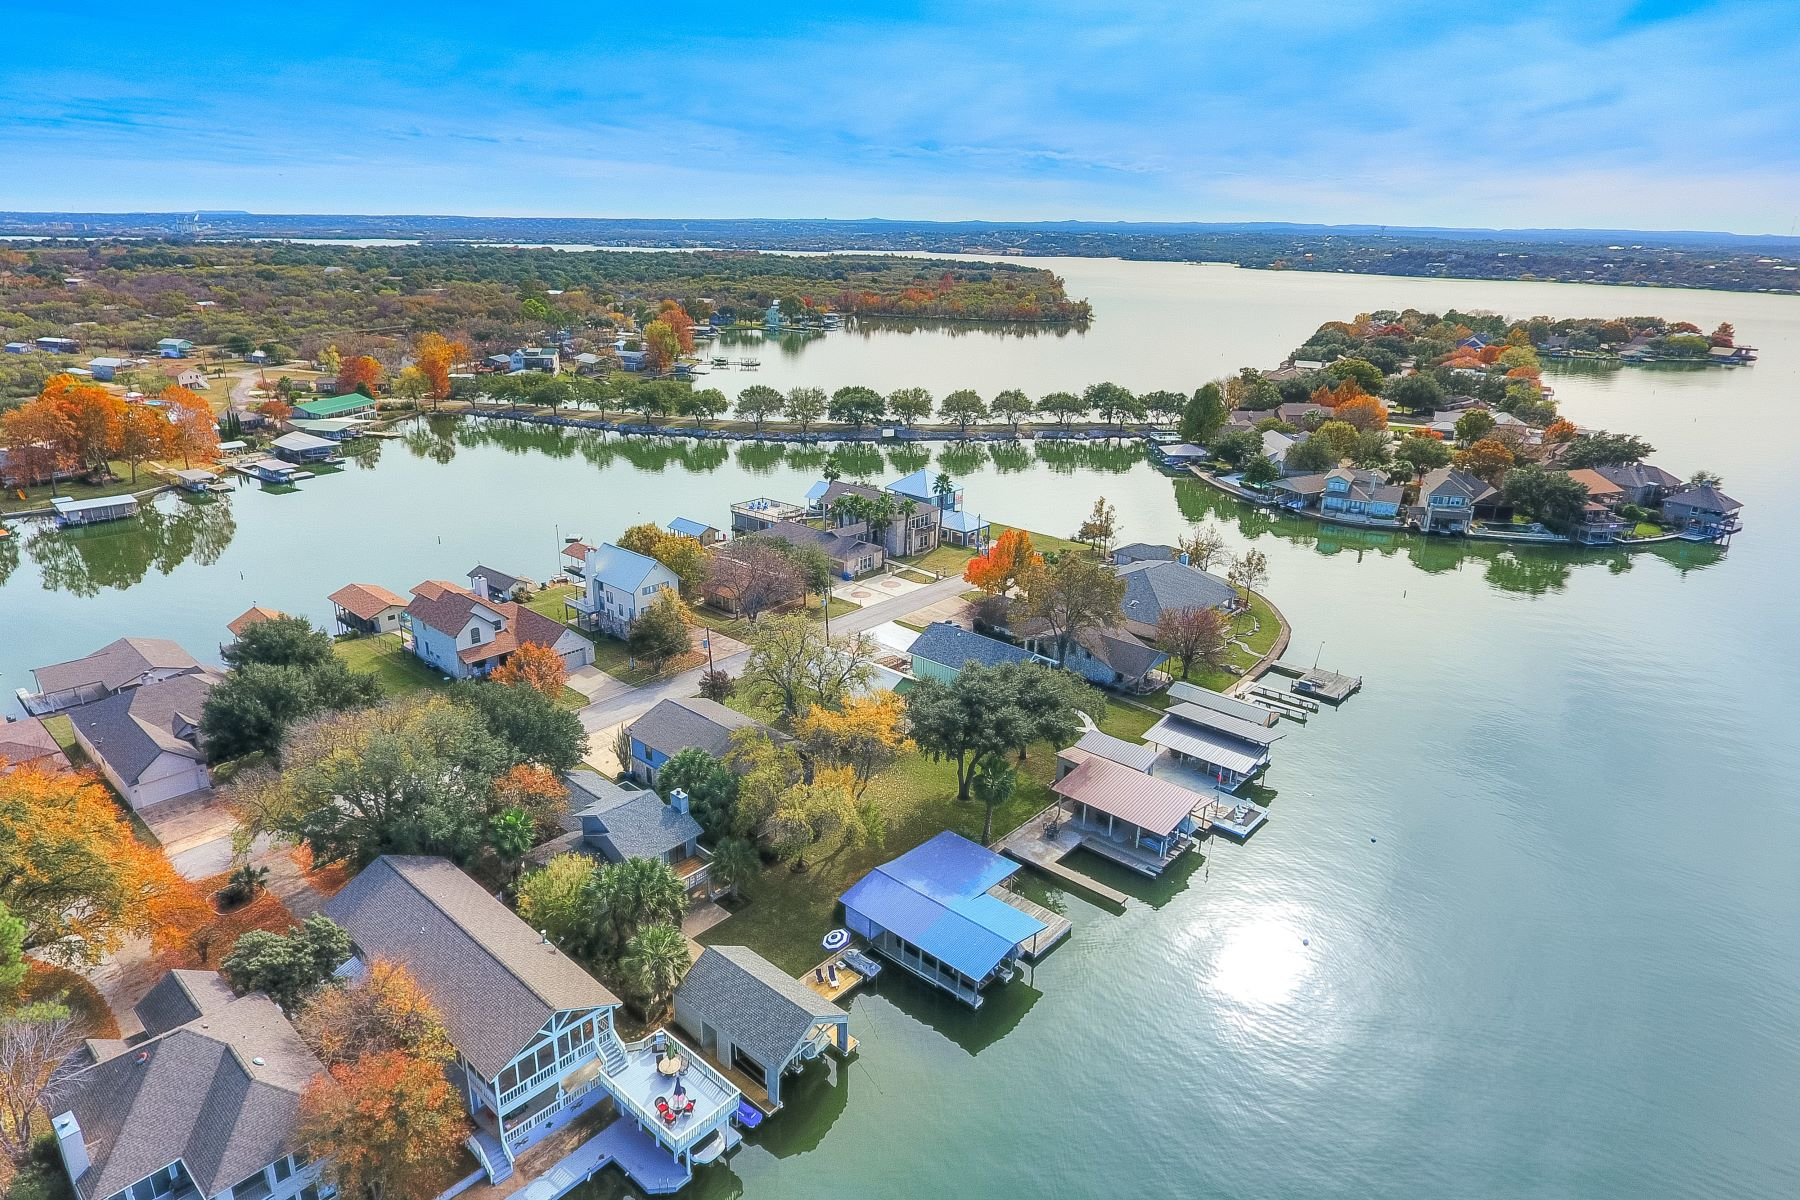 Maison unifamiliale pour l Vente à Ultimate Lake LBJ Retreat 130 Web Isle Drive, Marble Falls, Texas, 78654 États-Unis